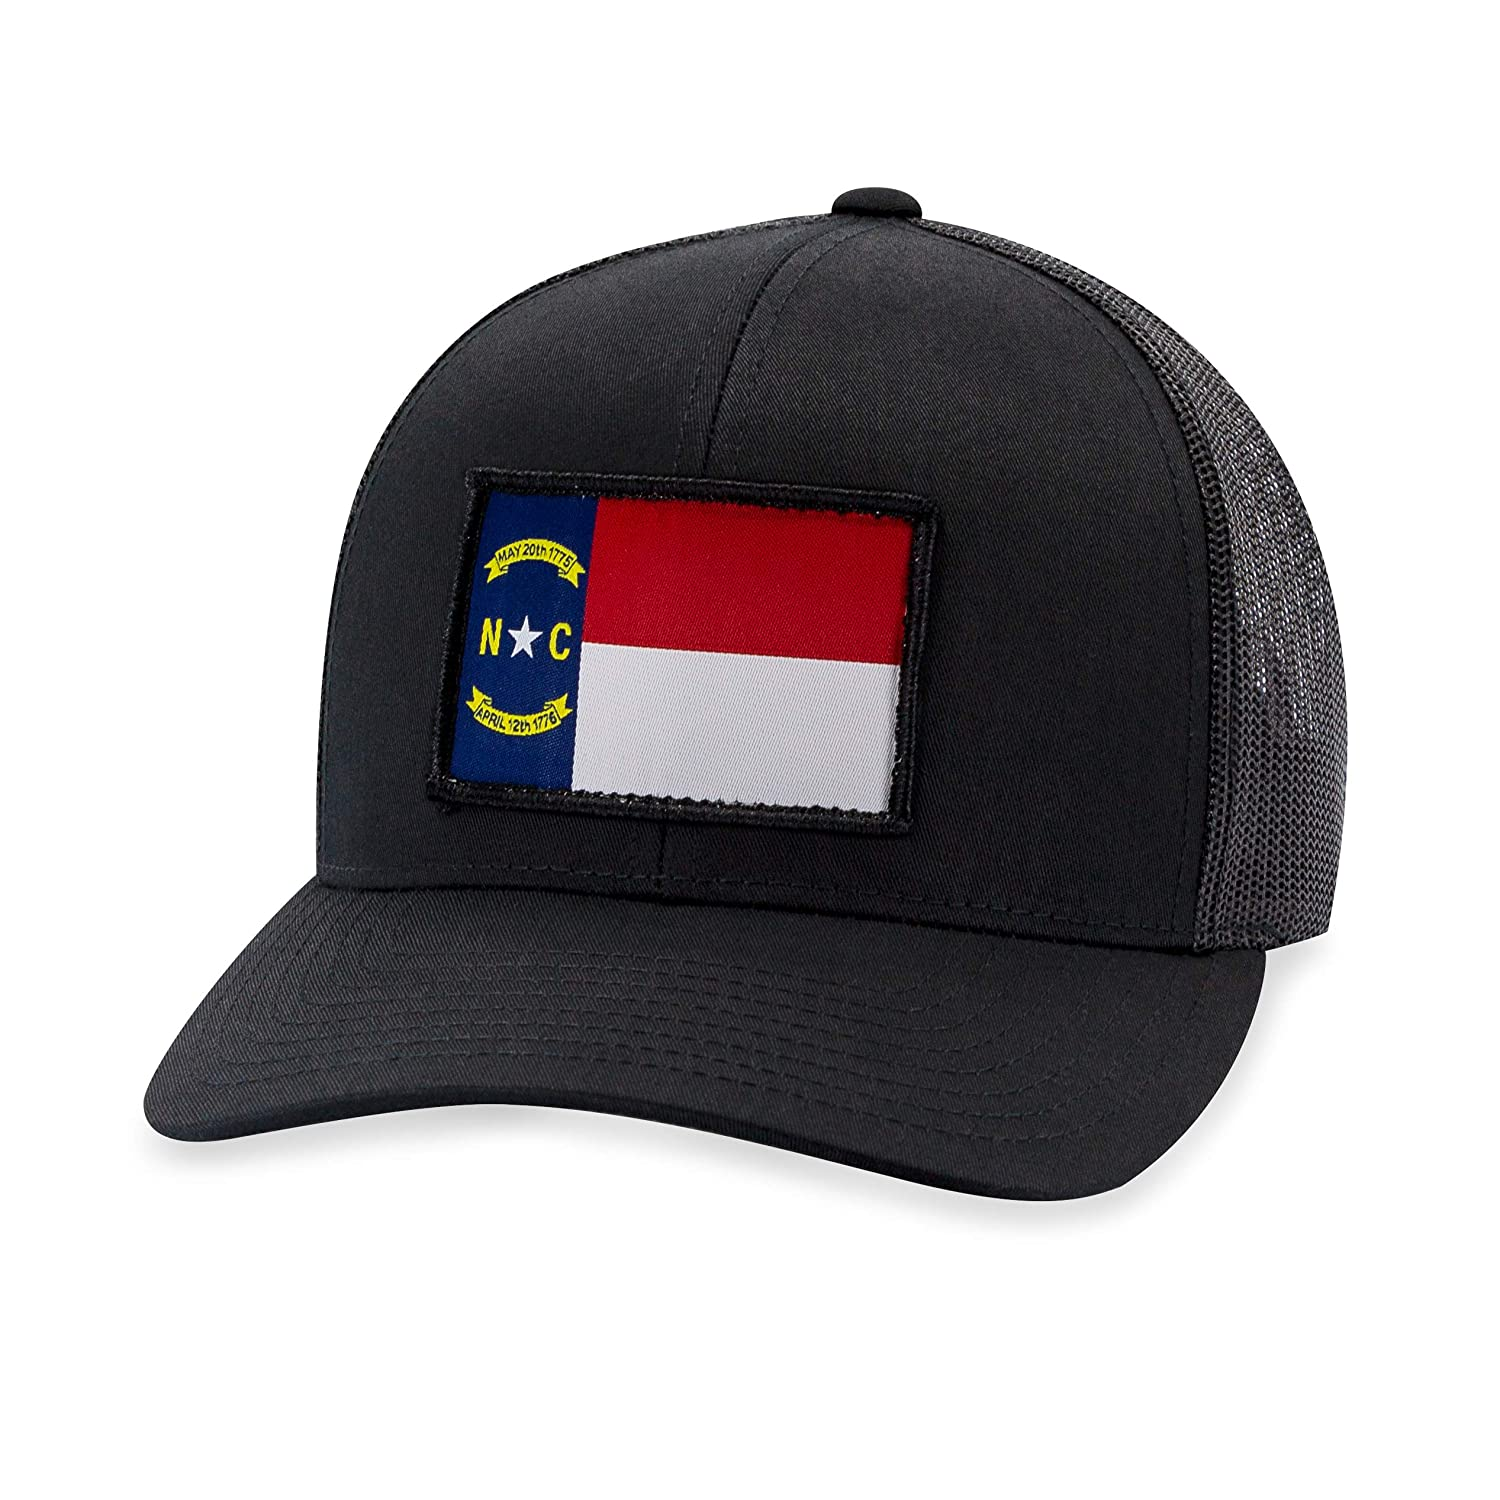 Trucker Mesh Snapback Baseball Cap North Carolina Flag Hat Black